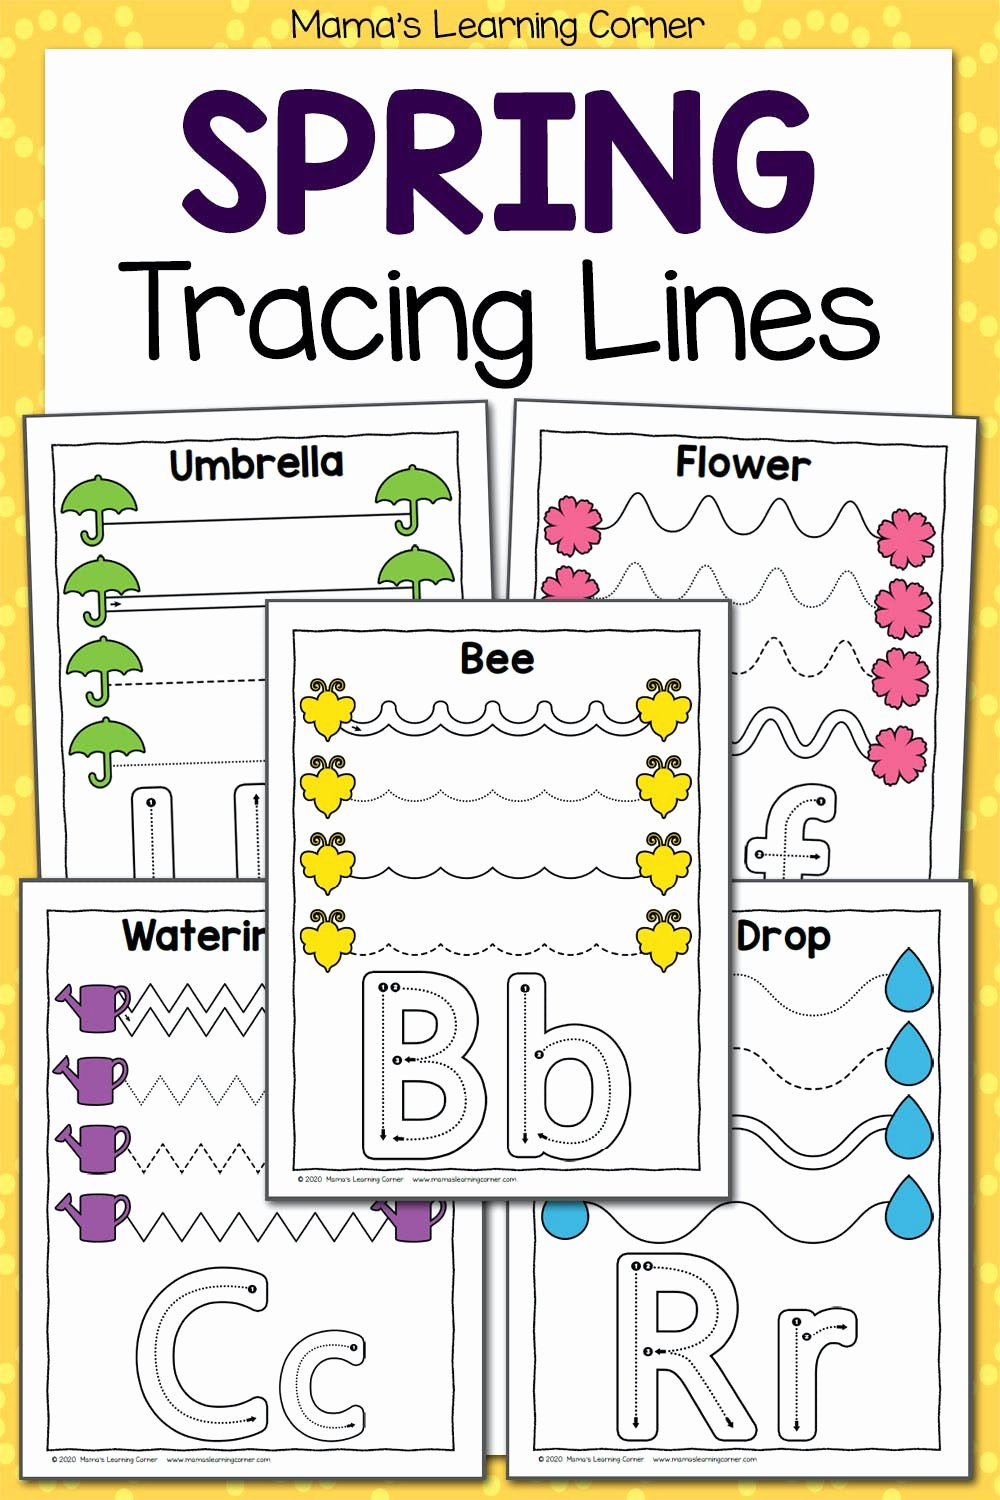 Trace the Lines Worksheets for Preschoolers New Spring Tracing Worksheets for Preschool Mamas Learning Corner